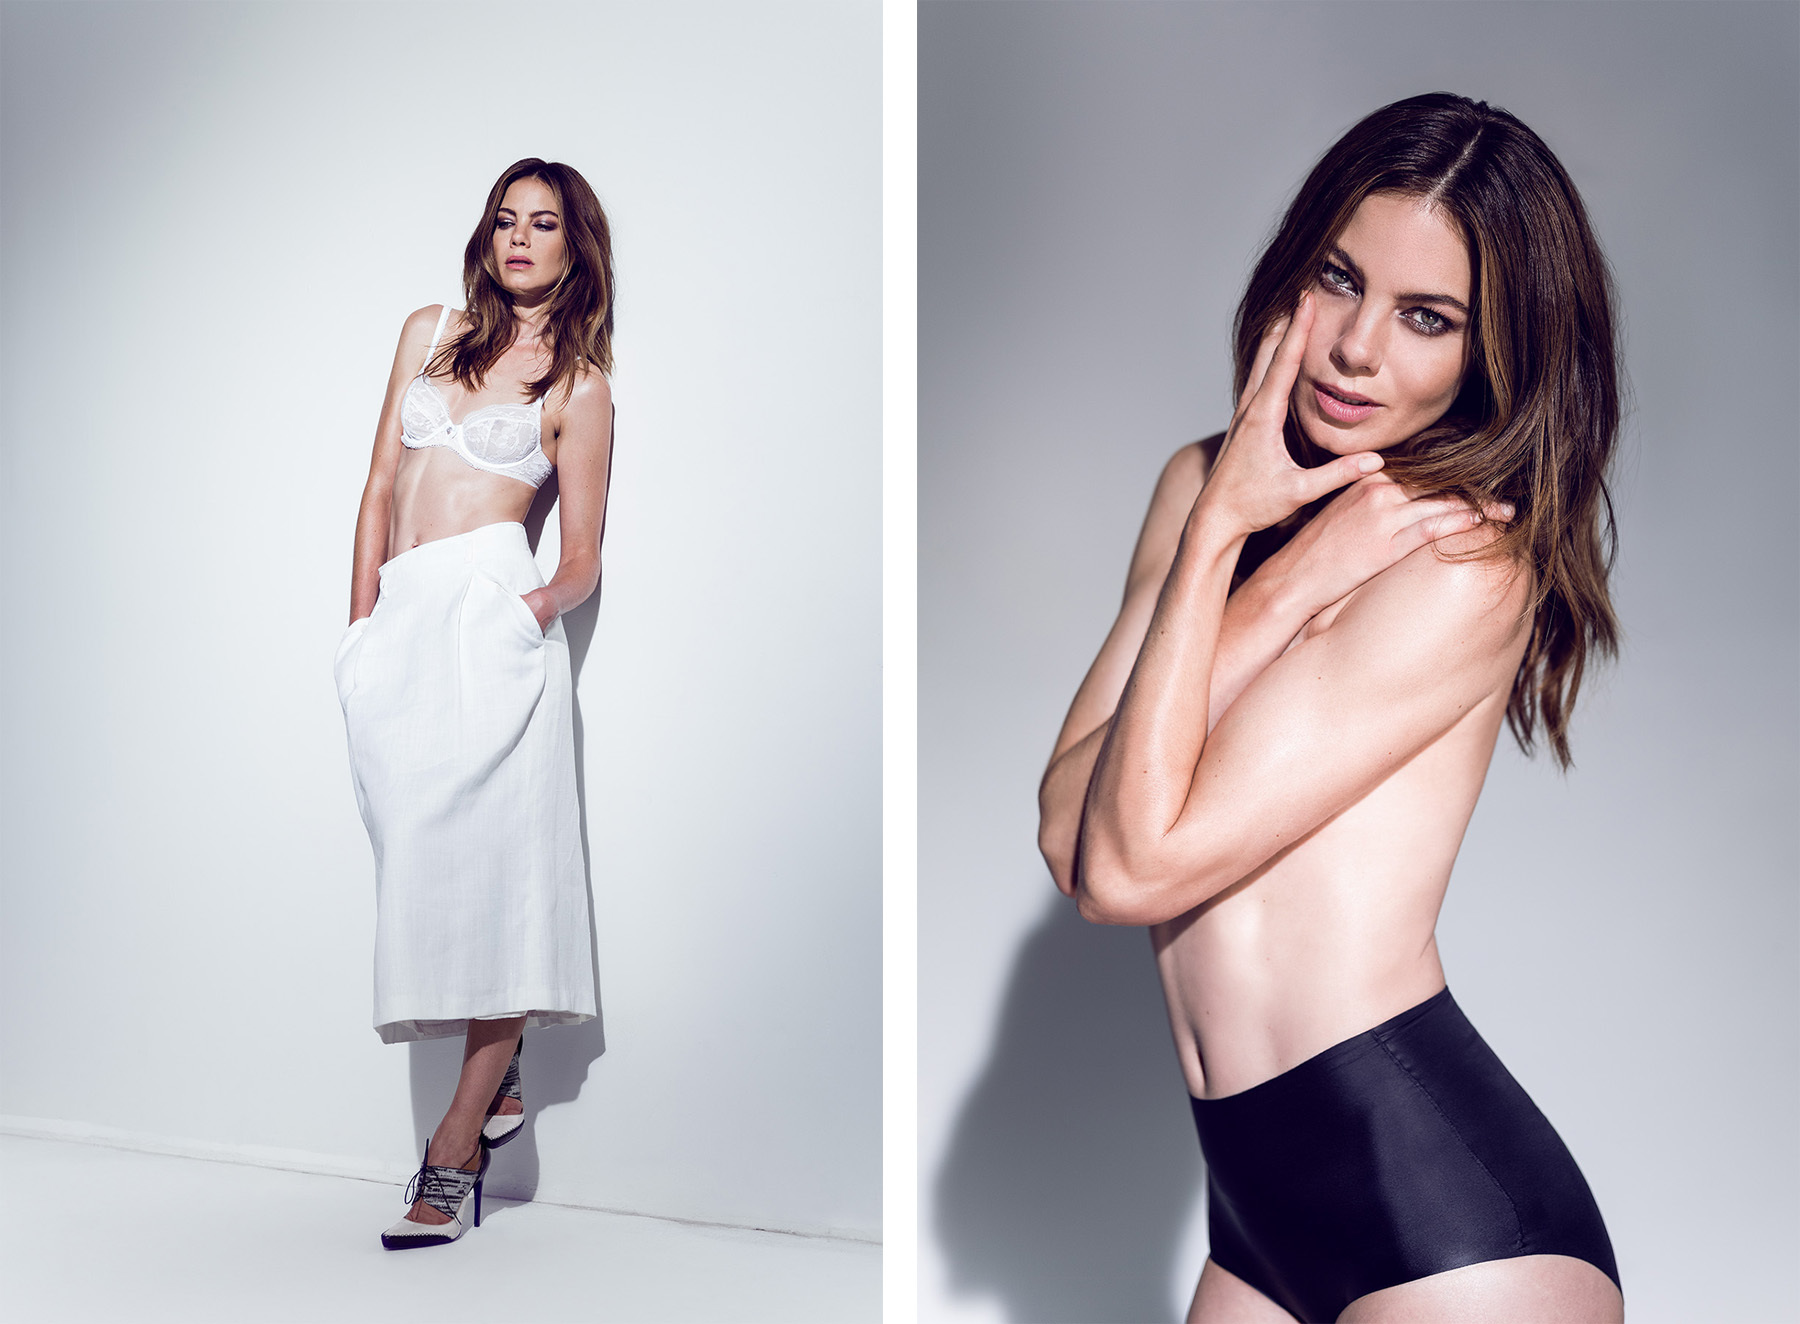 Michelle Monaghan for GQ Germany - Robert Wunsch